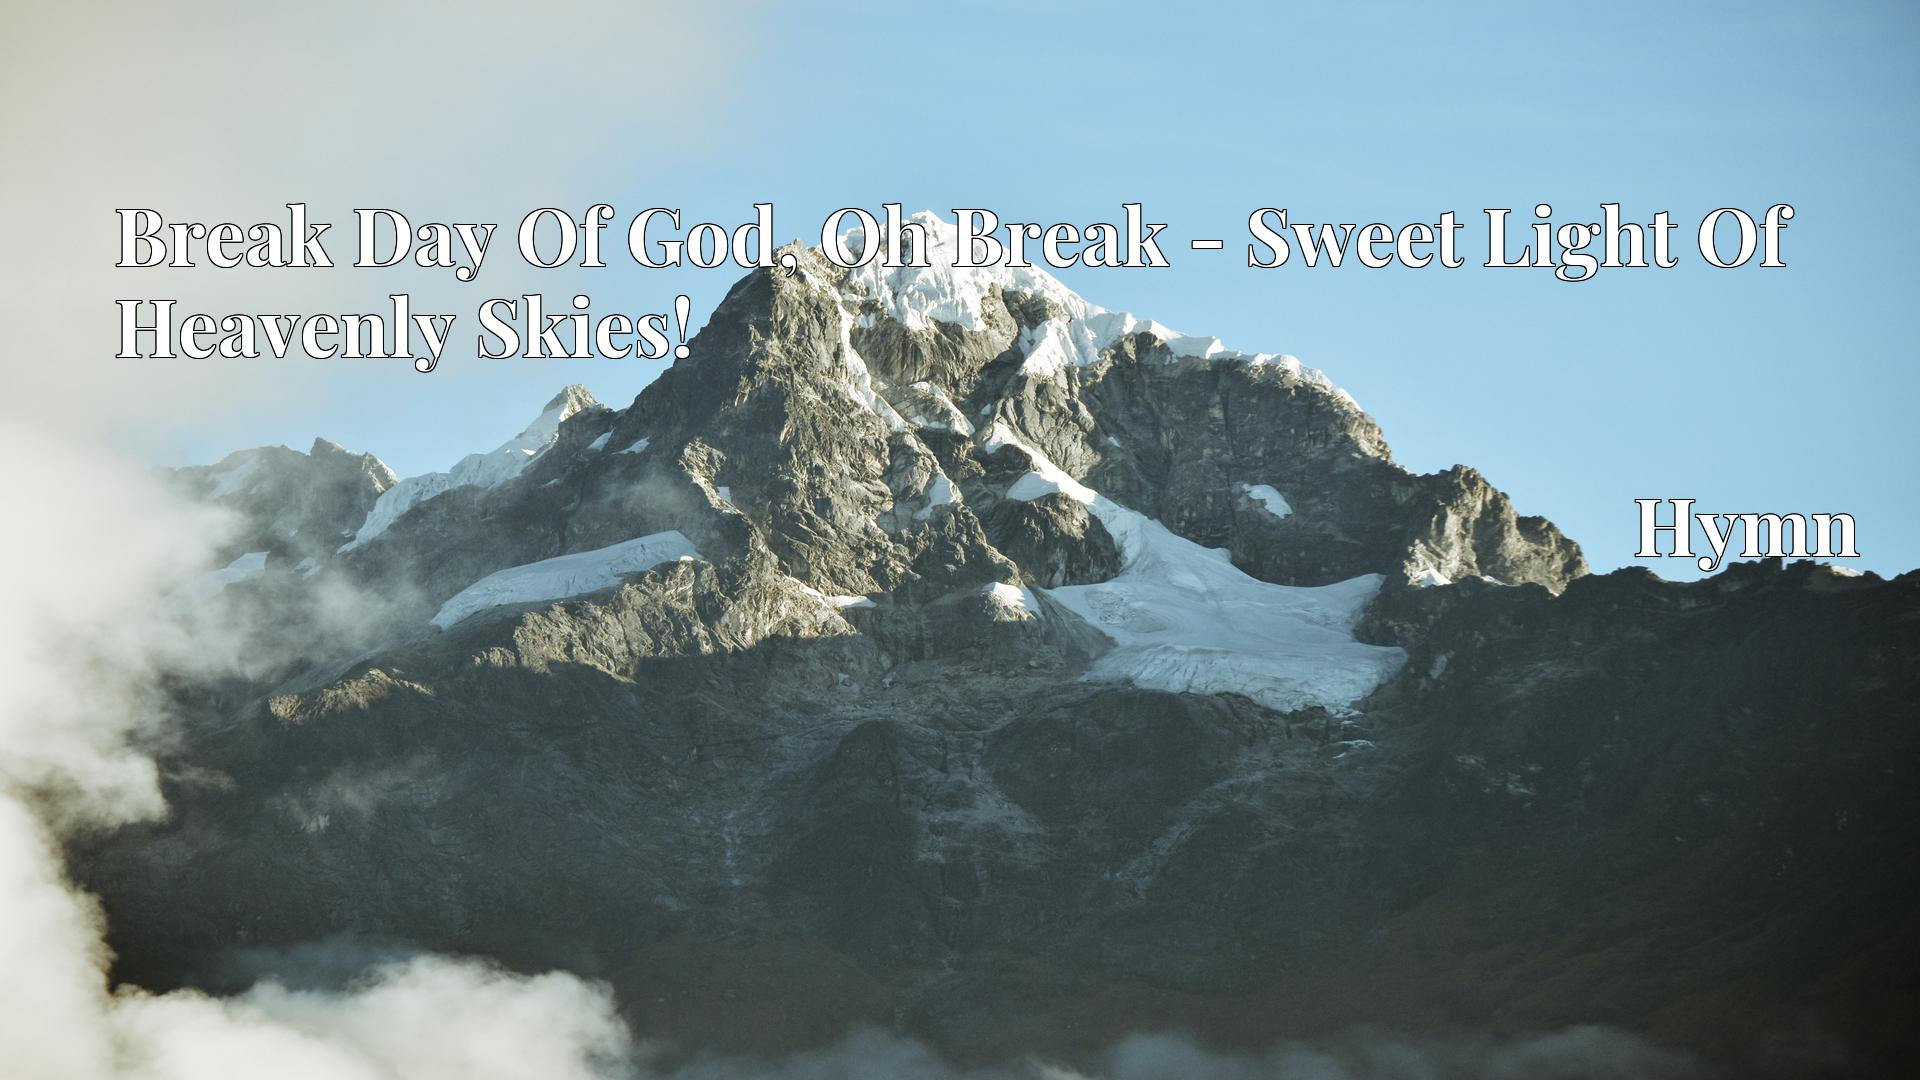 Break Day Of God, Oh Break - Sweet Light Of Heavenly Skies! - Hymn